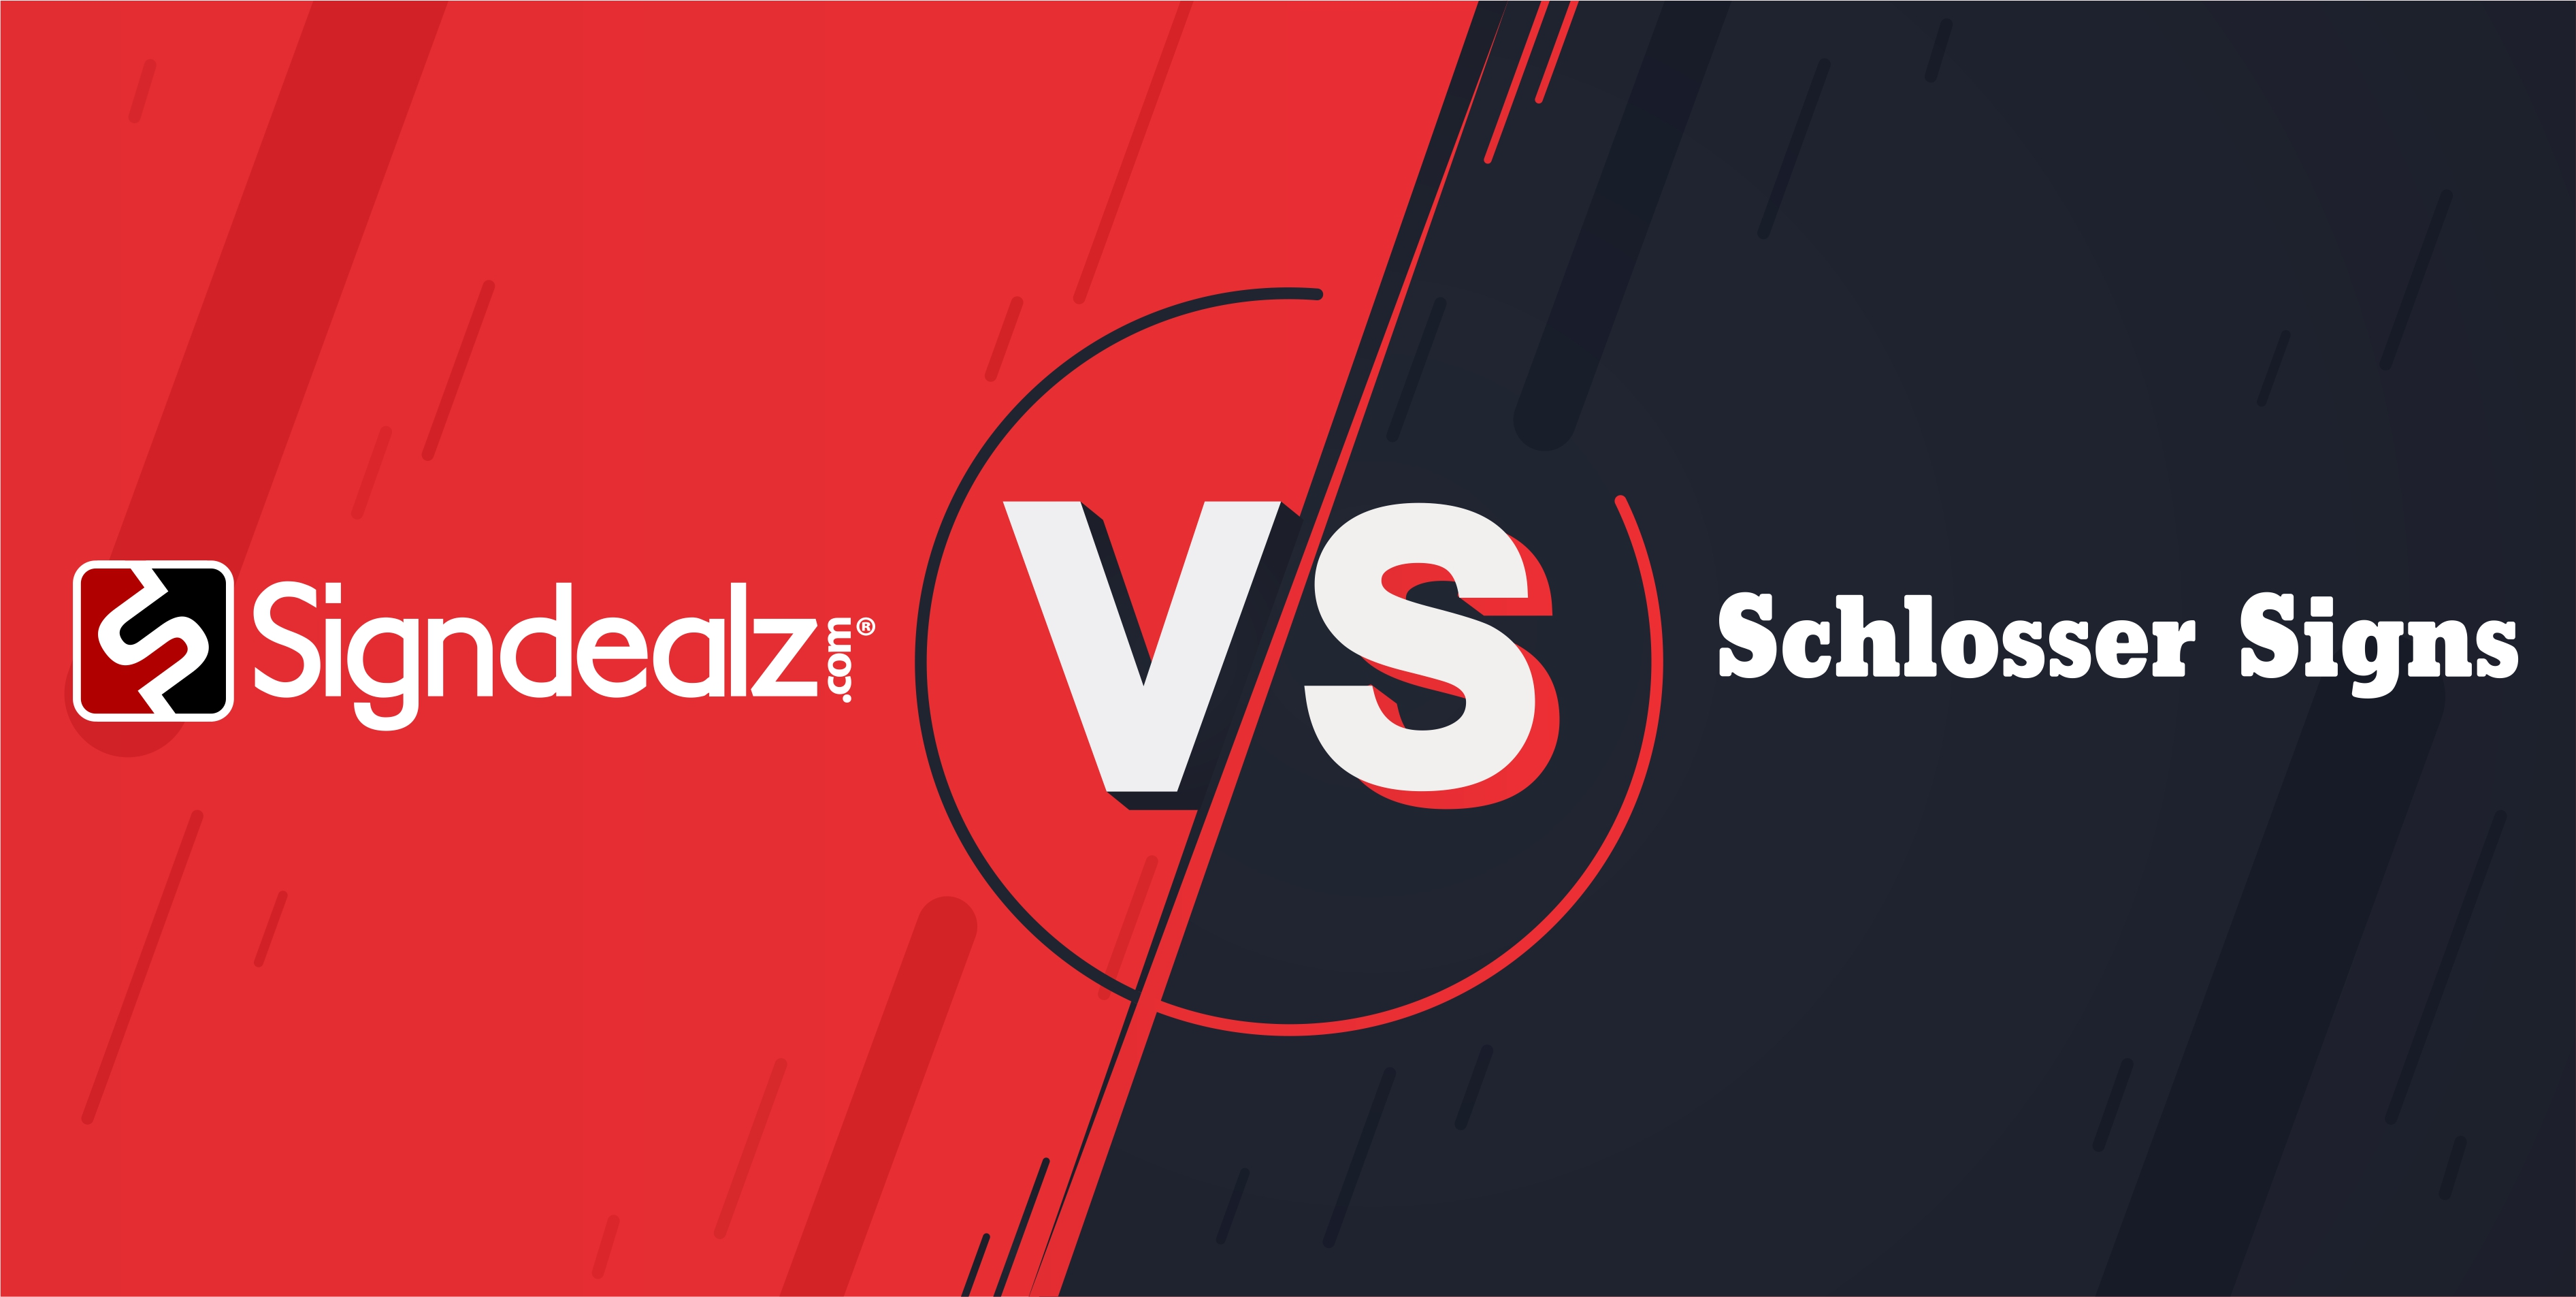 Schlosser Signs vs Signdealz